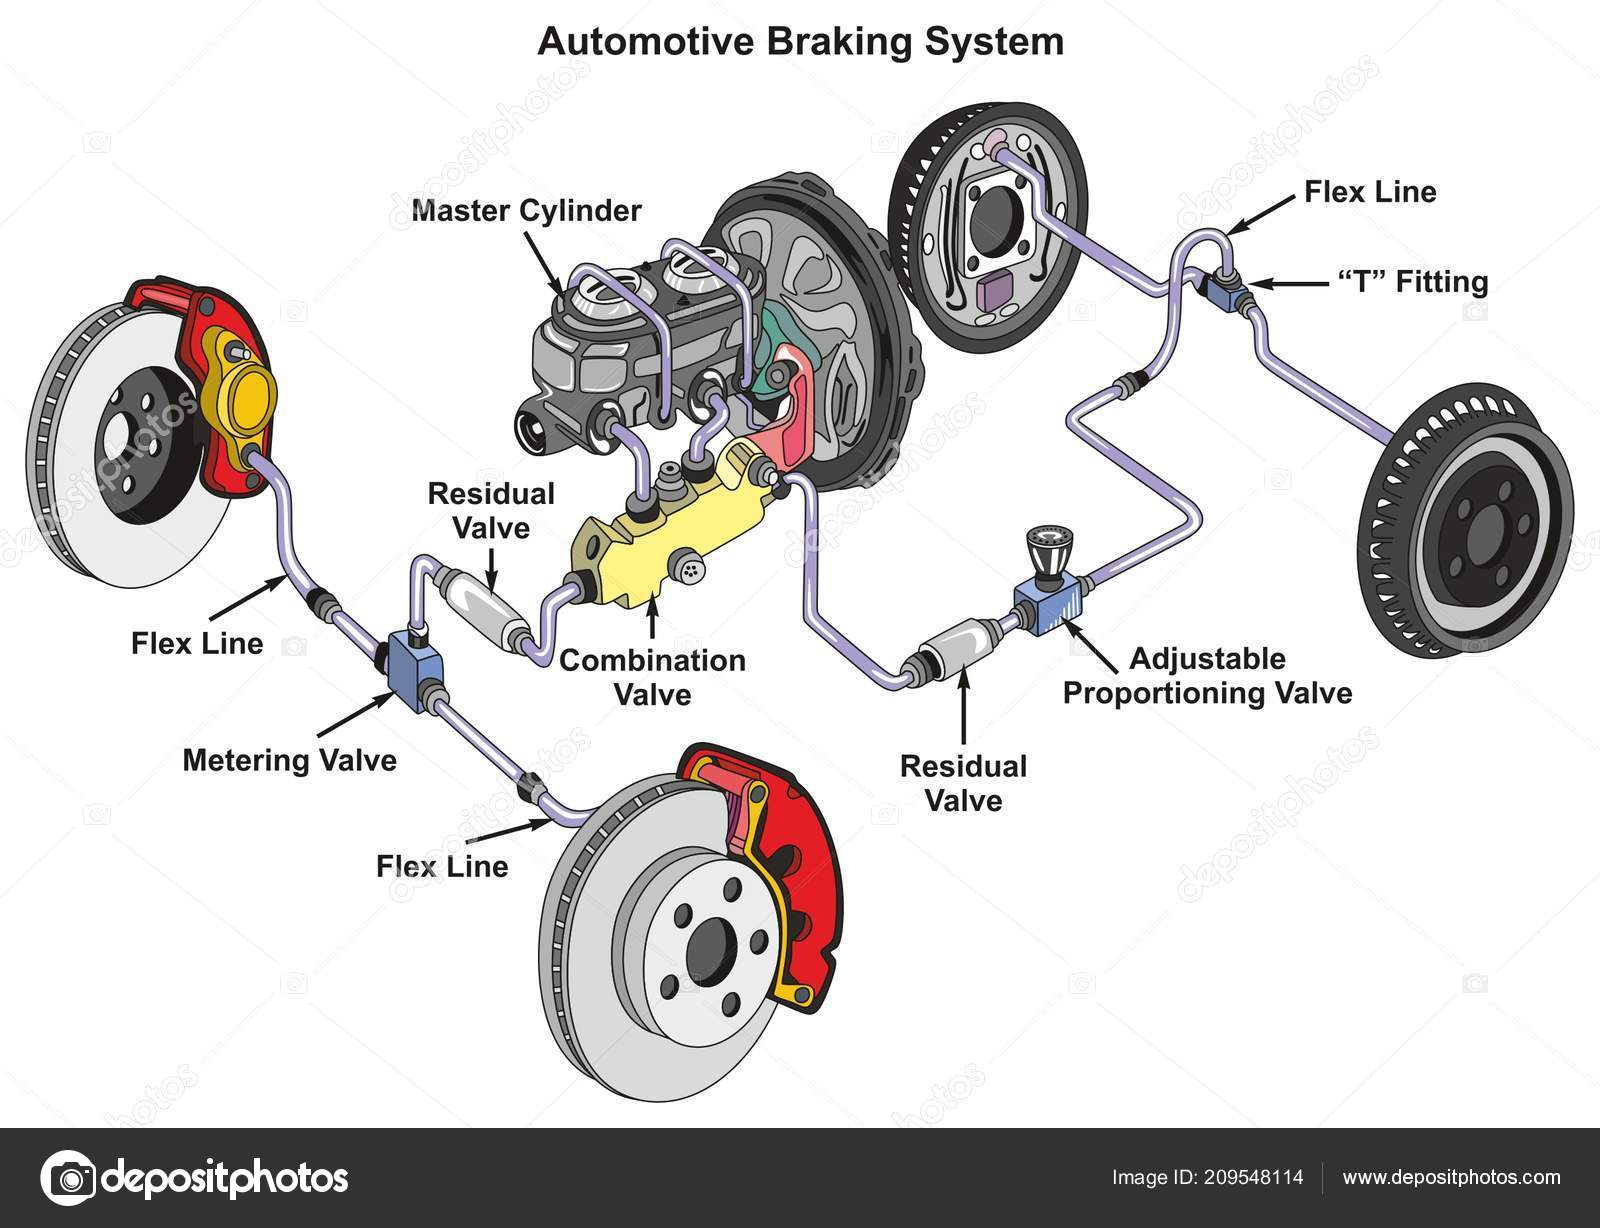 hight resolution of automotive braking system infographic diagram showing front disk back a car diagram